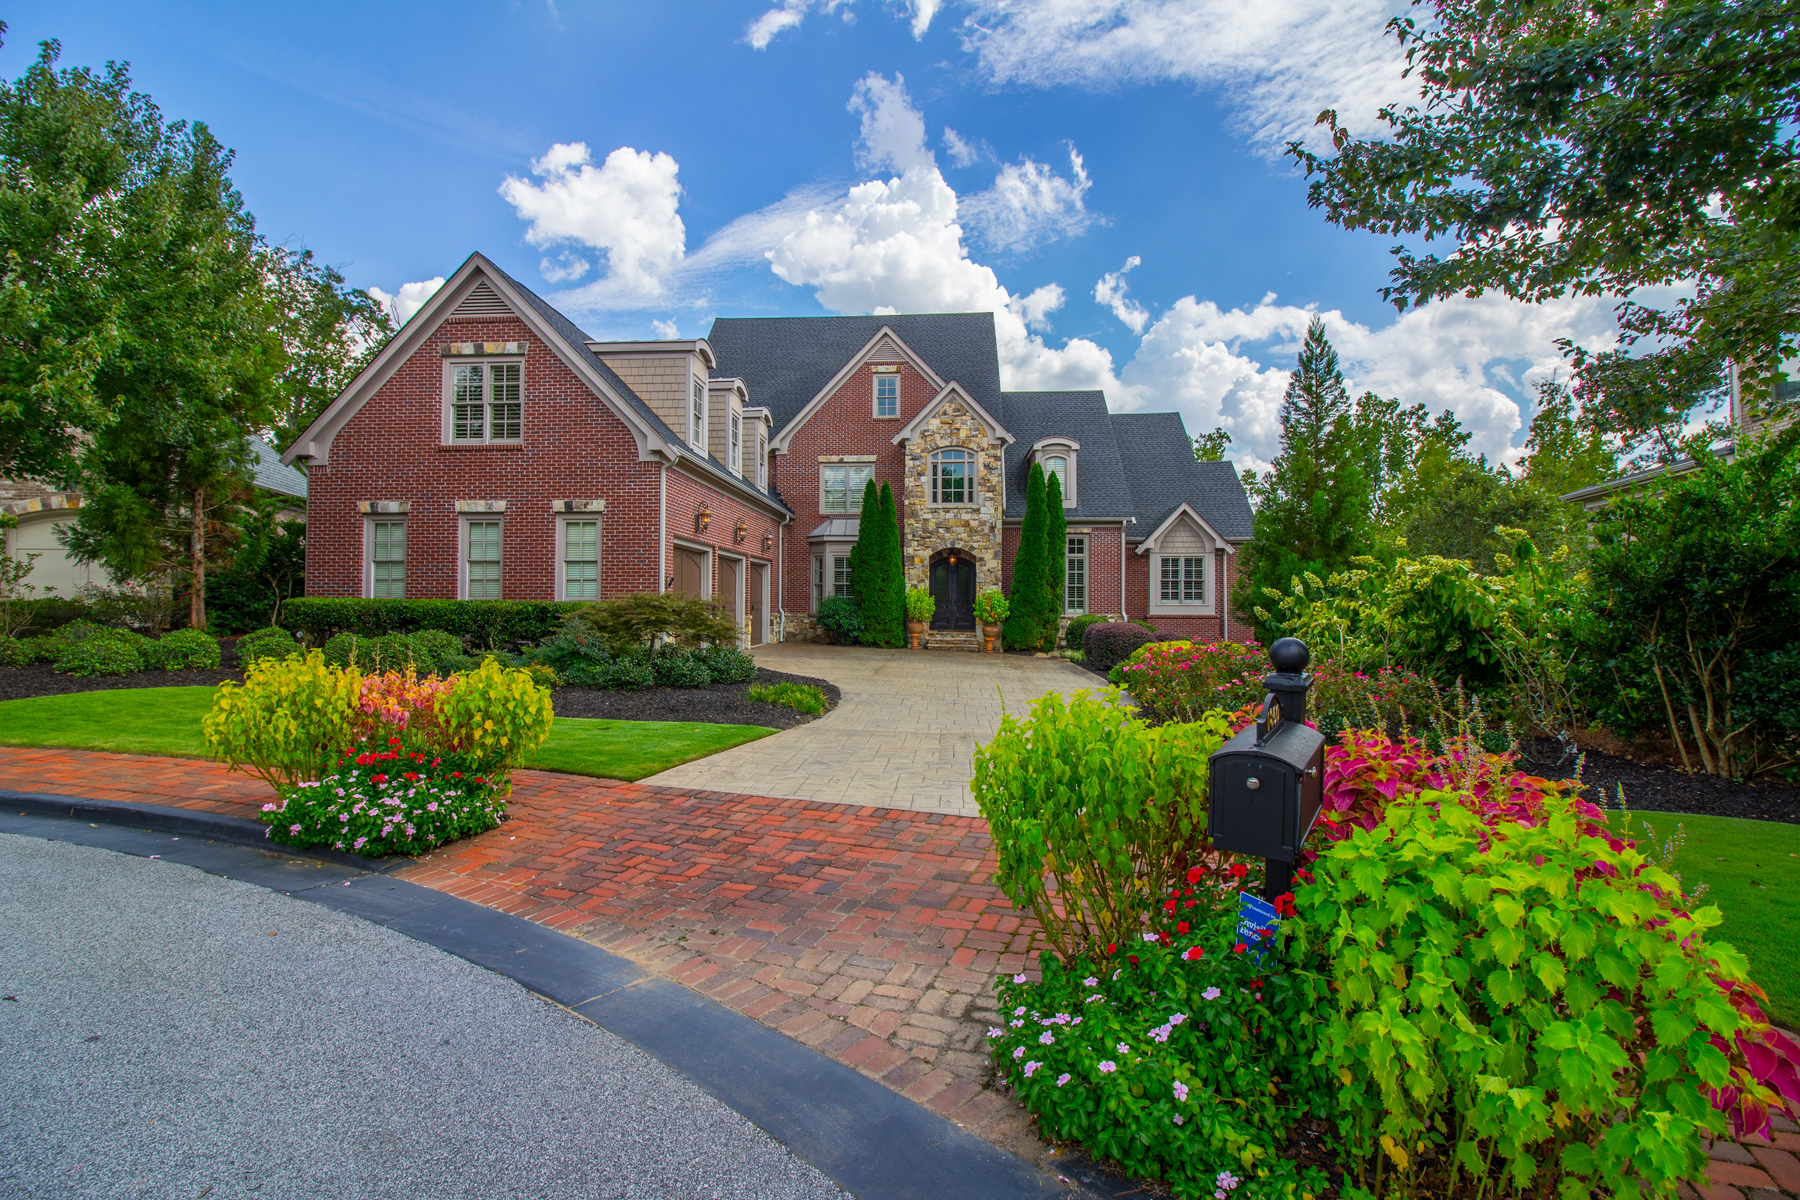 Single Family Home for Active at Stunning East Cobb Masterpiece 1850 High Trail Atlanta, Georgia 30339 United States